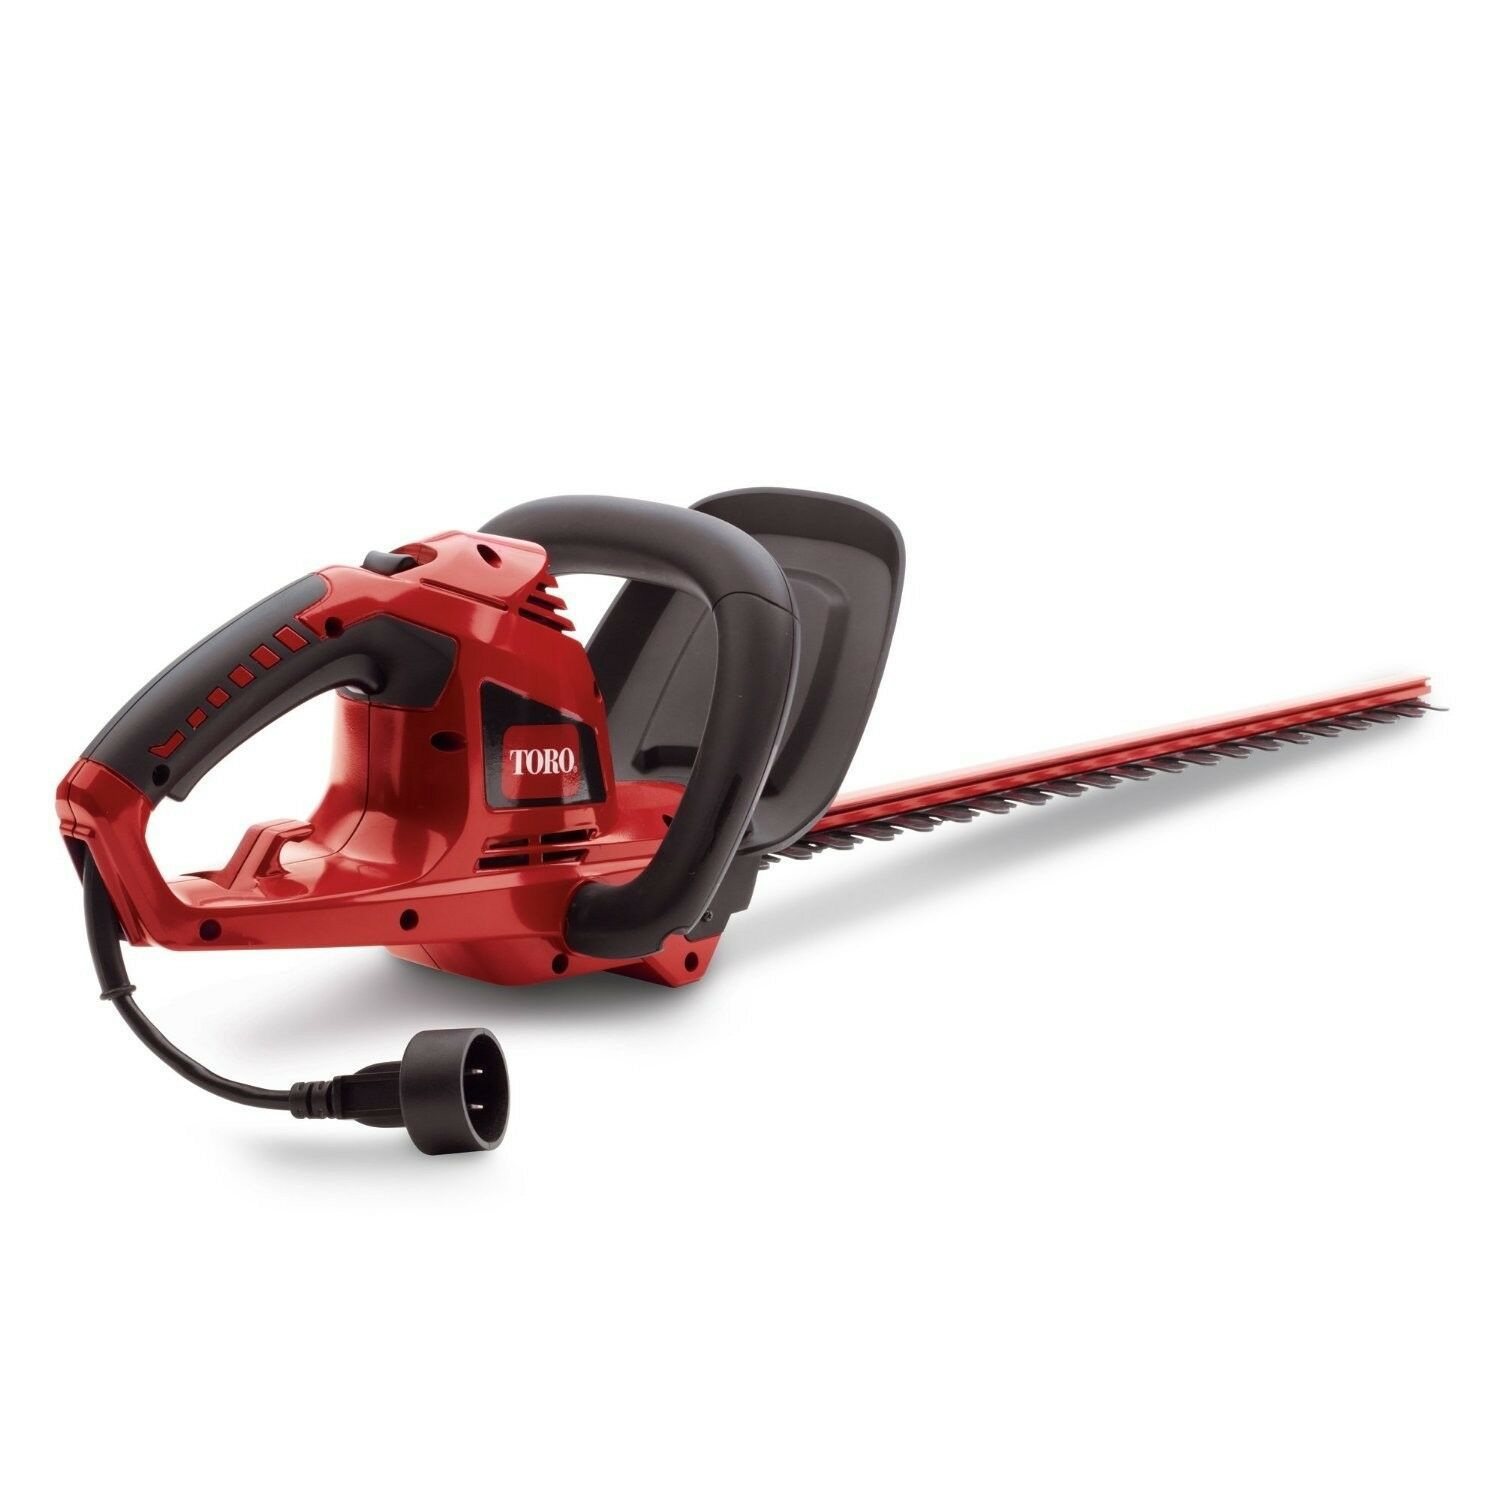 Garden Hedge Trimmer Cutter Trimming Equipment Plants Sidewalk Tool FASTSHIP NEW - $80.14